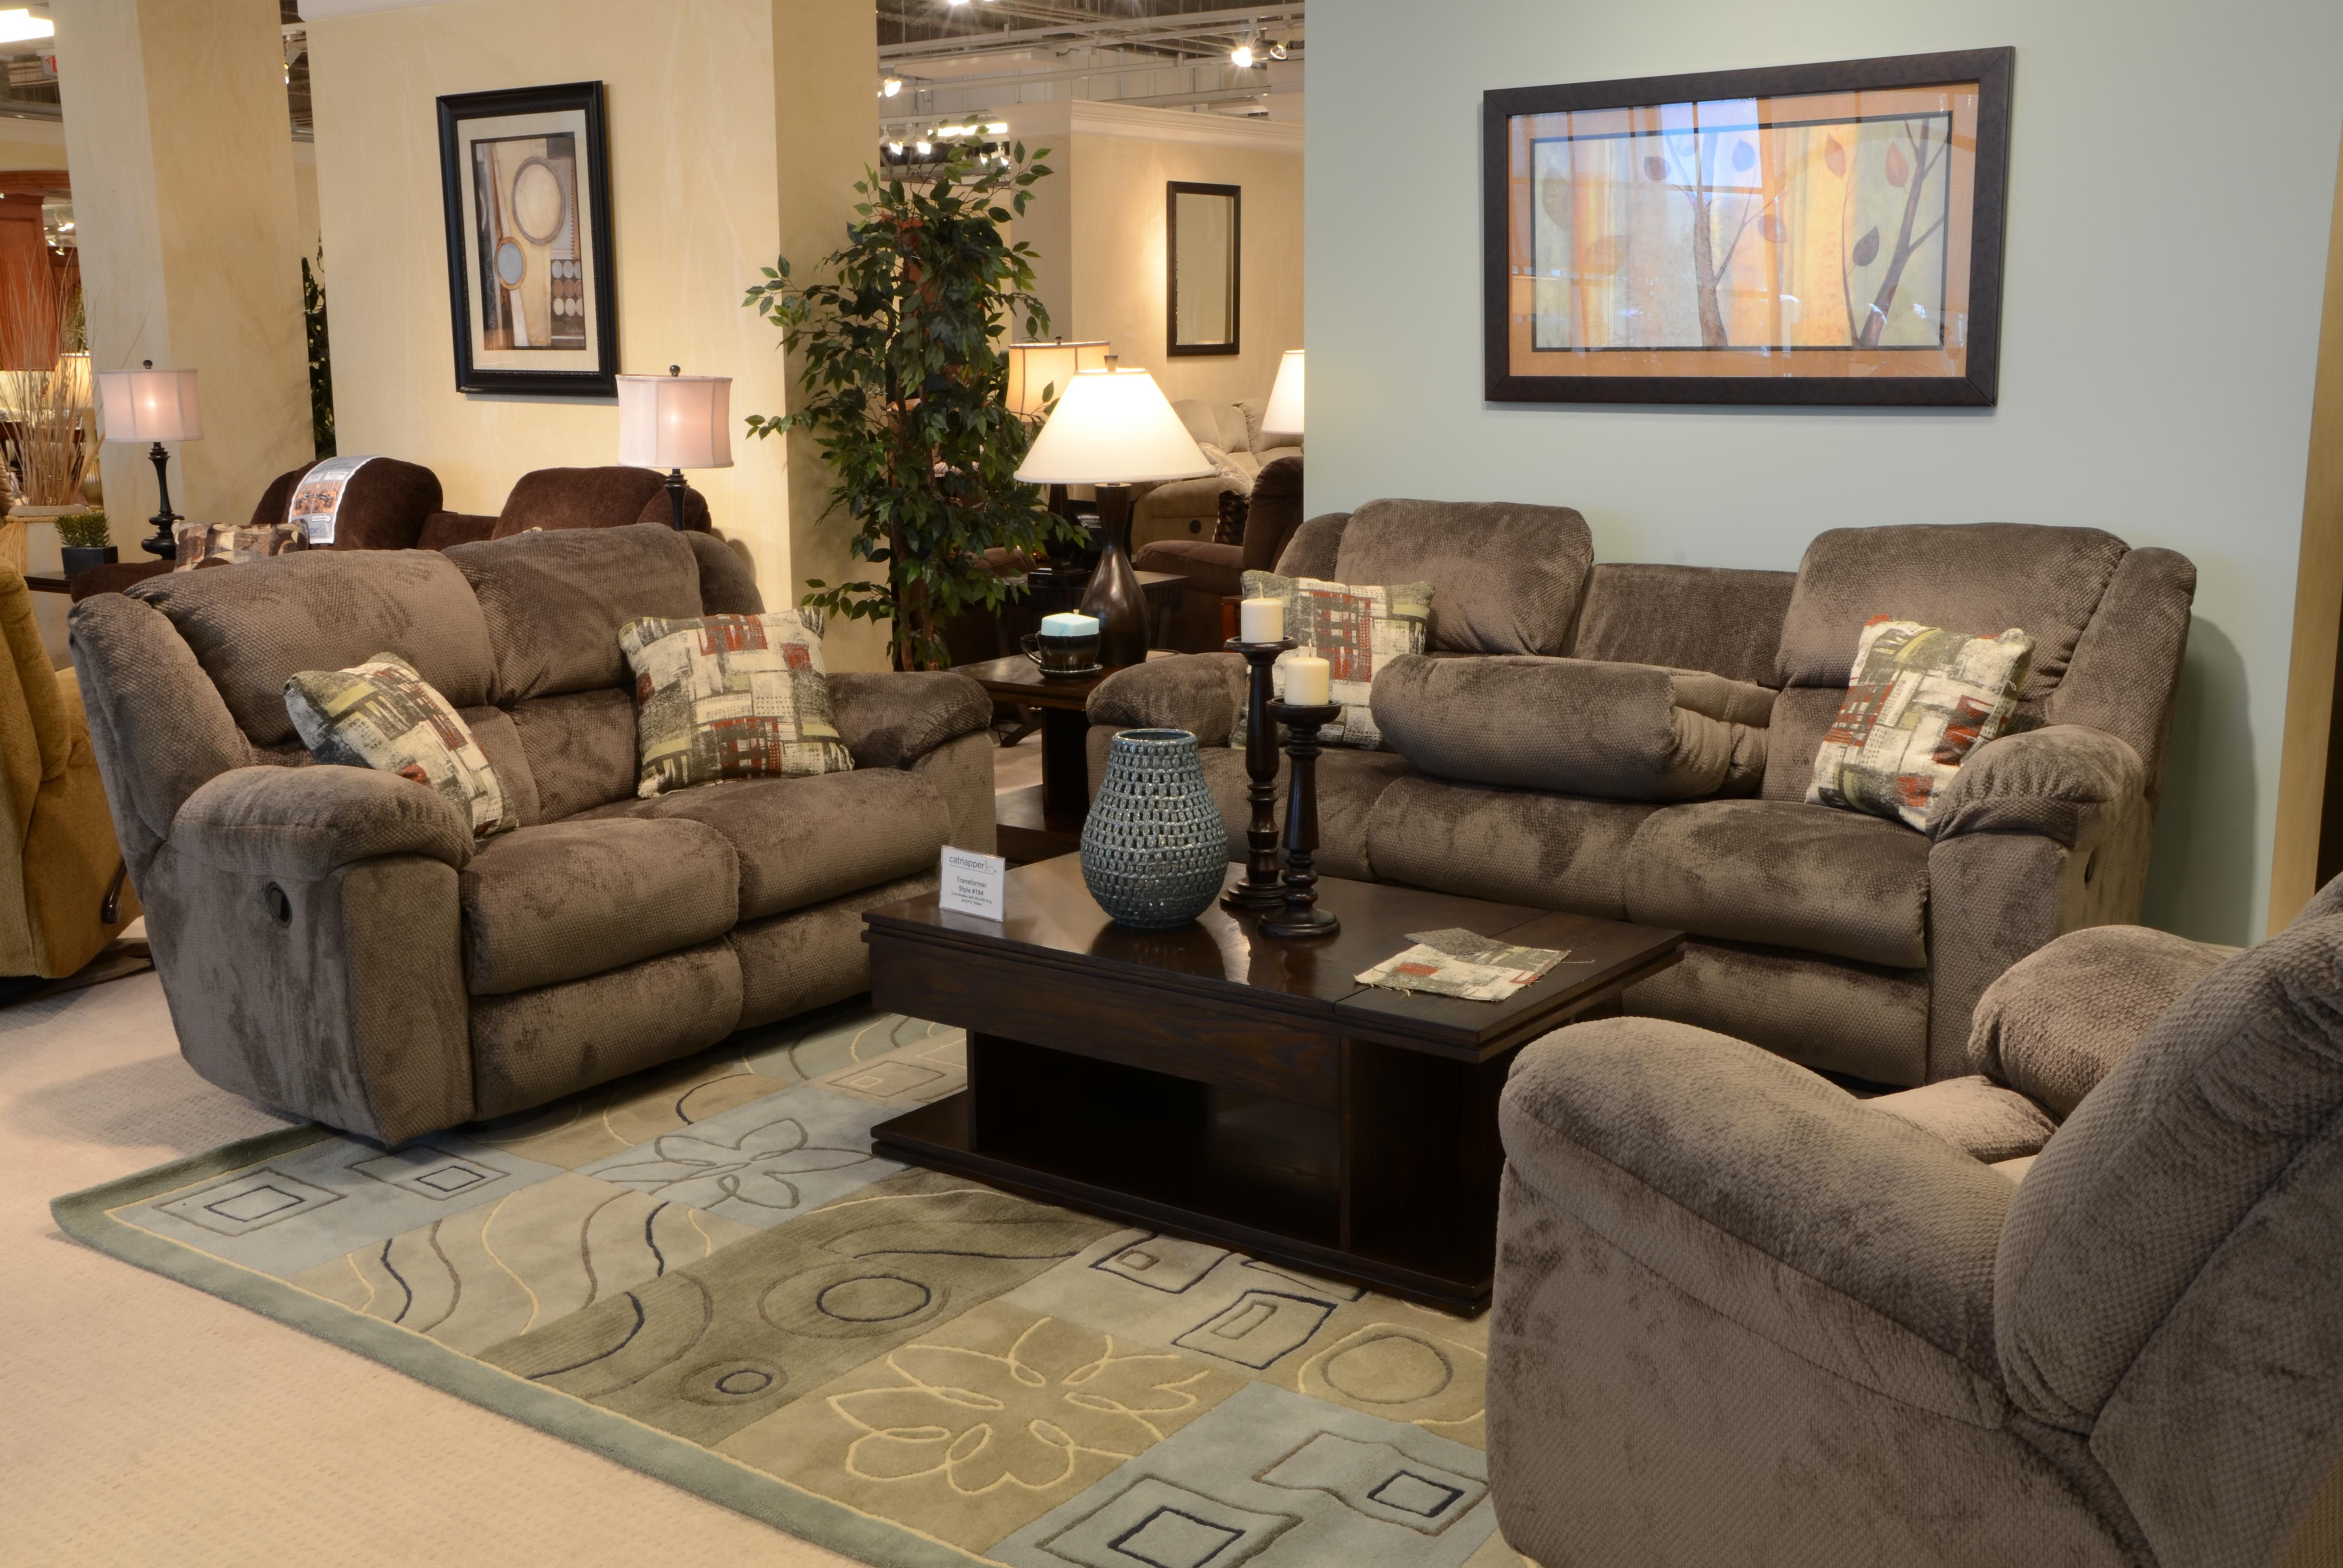 triple reclining sofa metal futon bed uk the seal collection offers a also available in power recline super soft gray chenille fabric offered at 898 88